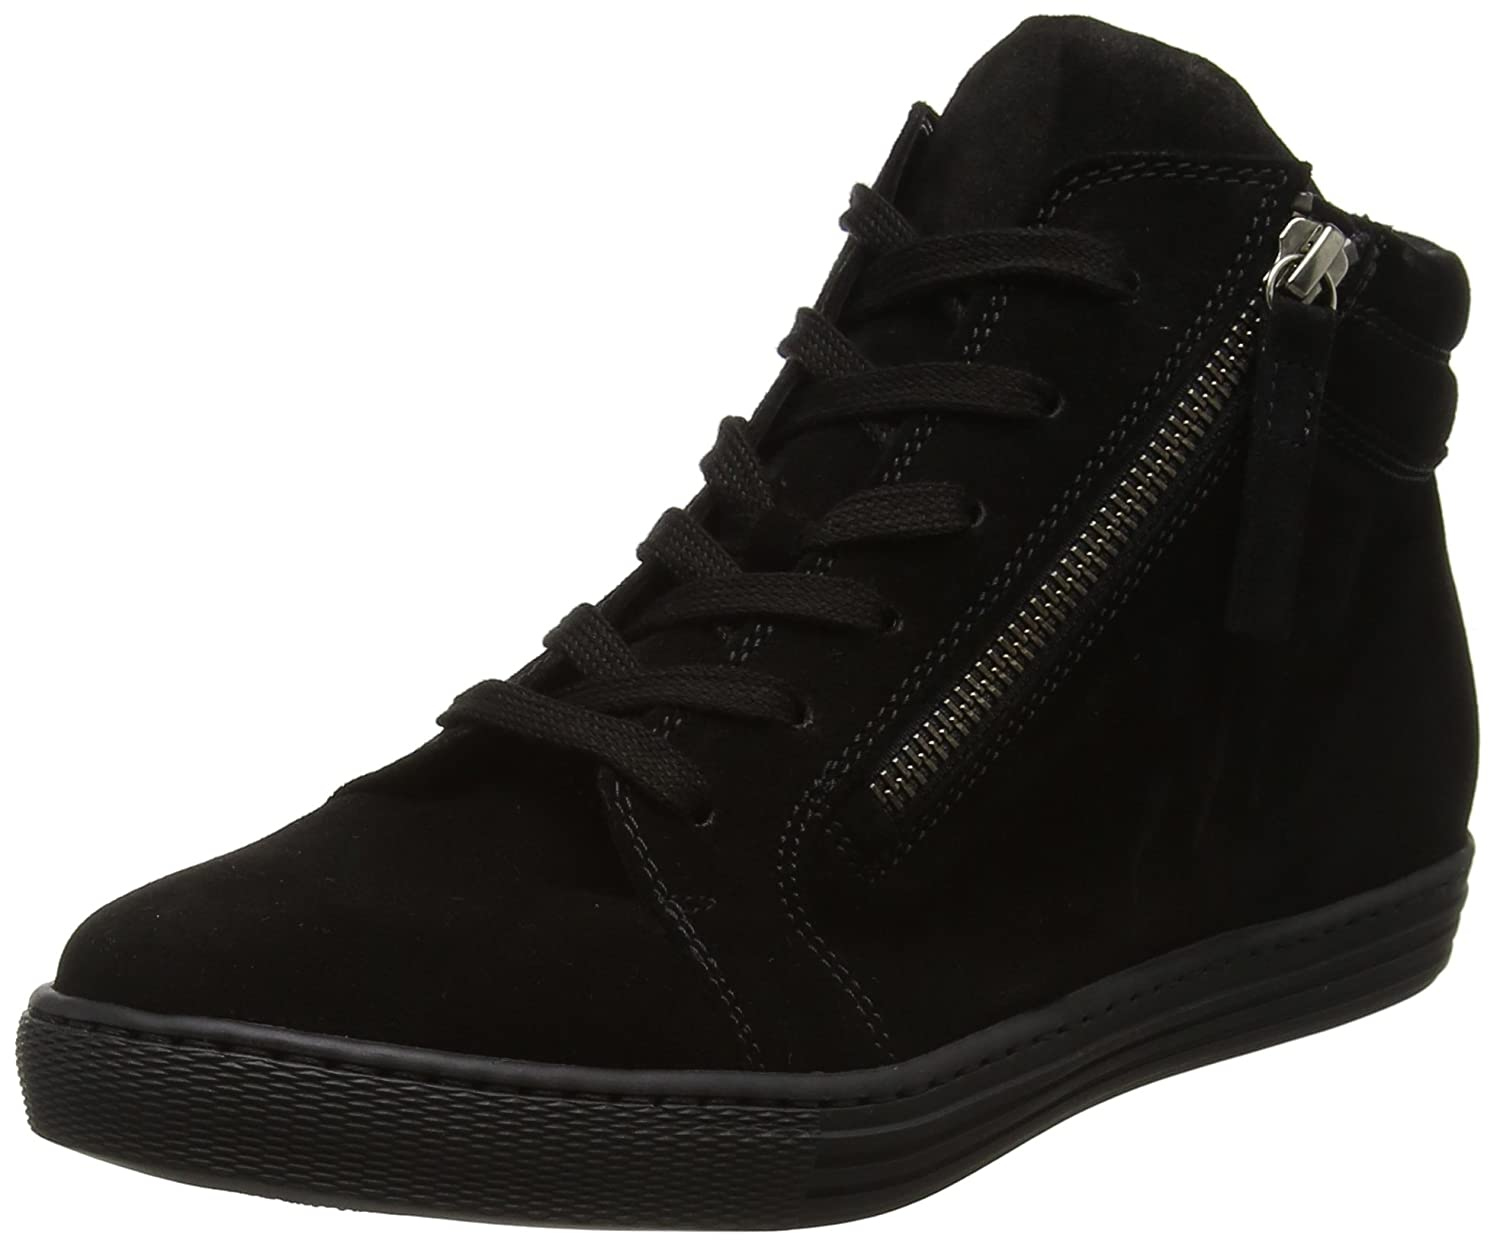 Gabor Basic, Shoes Comfort Shoes Basic, Femme Derbys Femme Noir (Schws.schw/Micro) cdc2e33 - piero.space